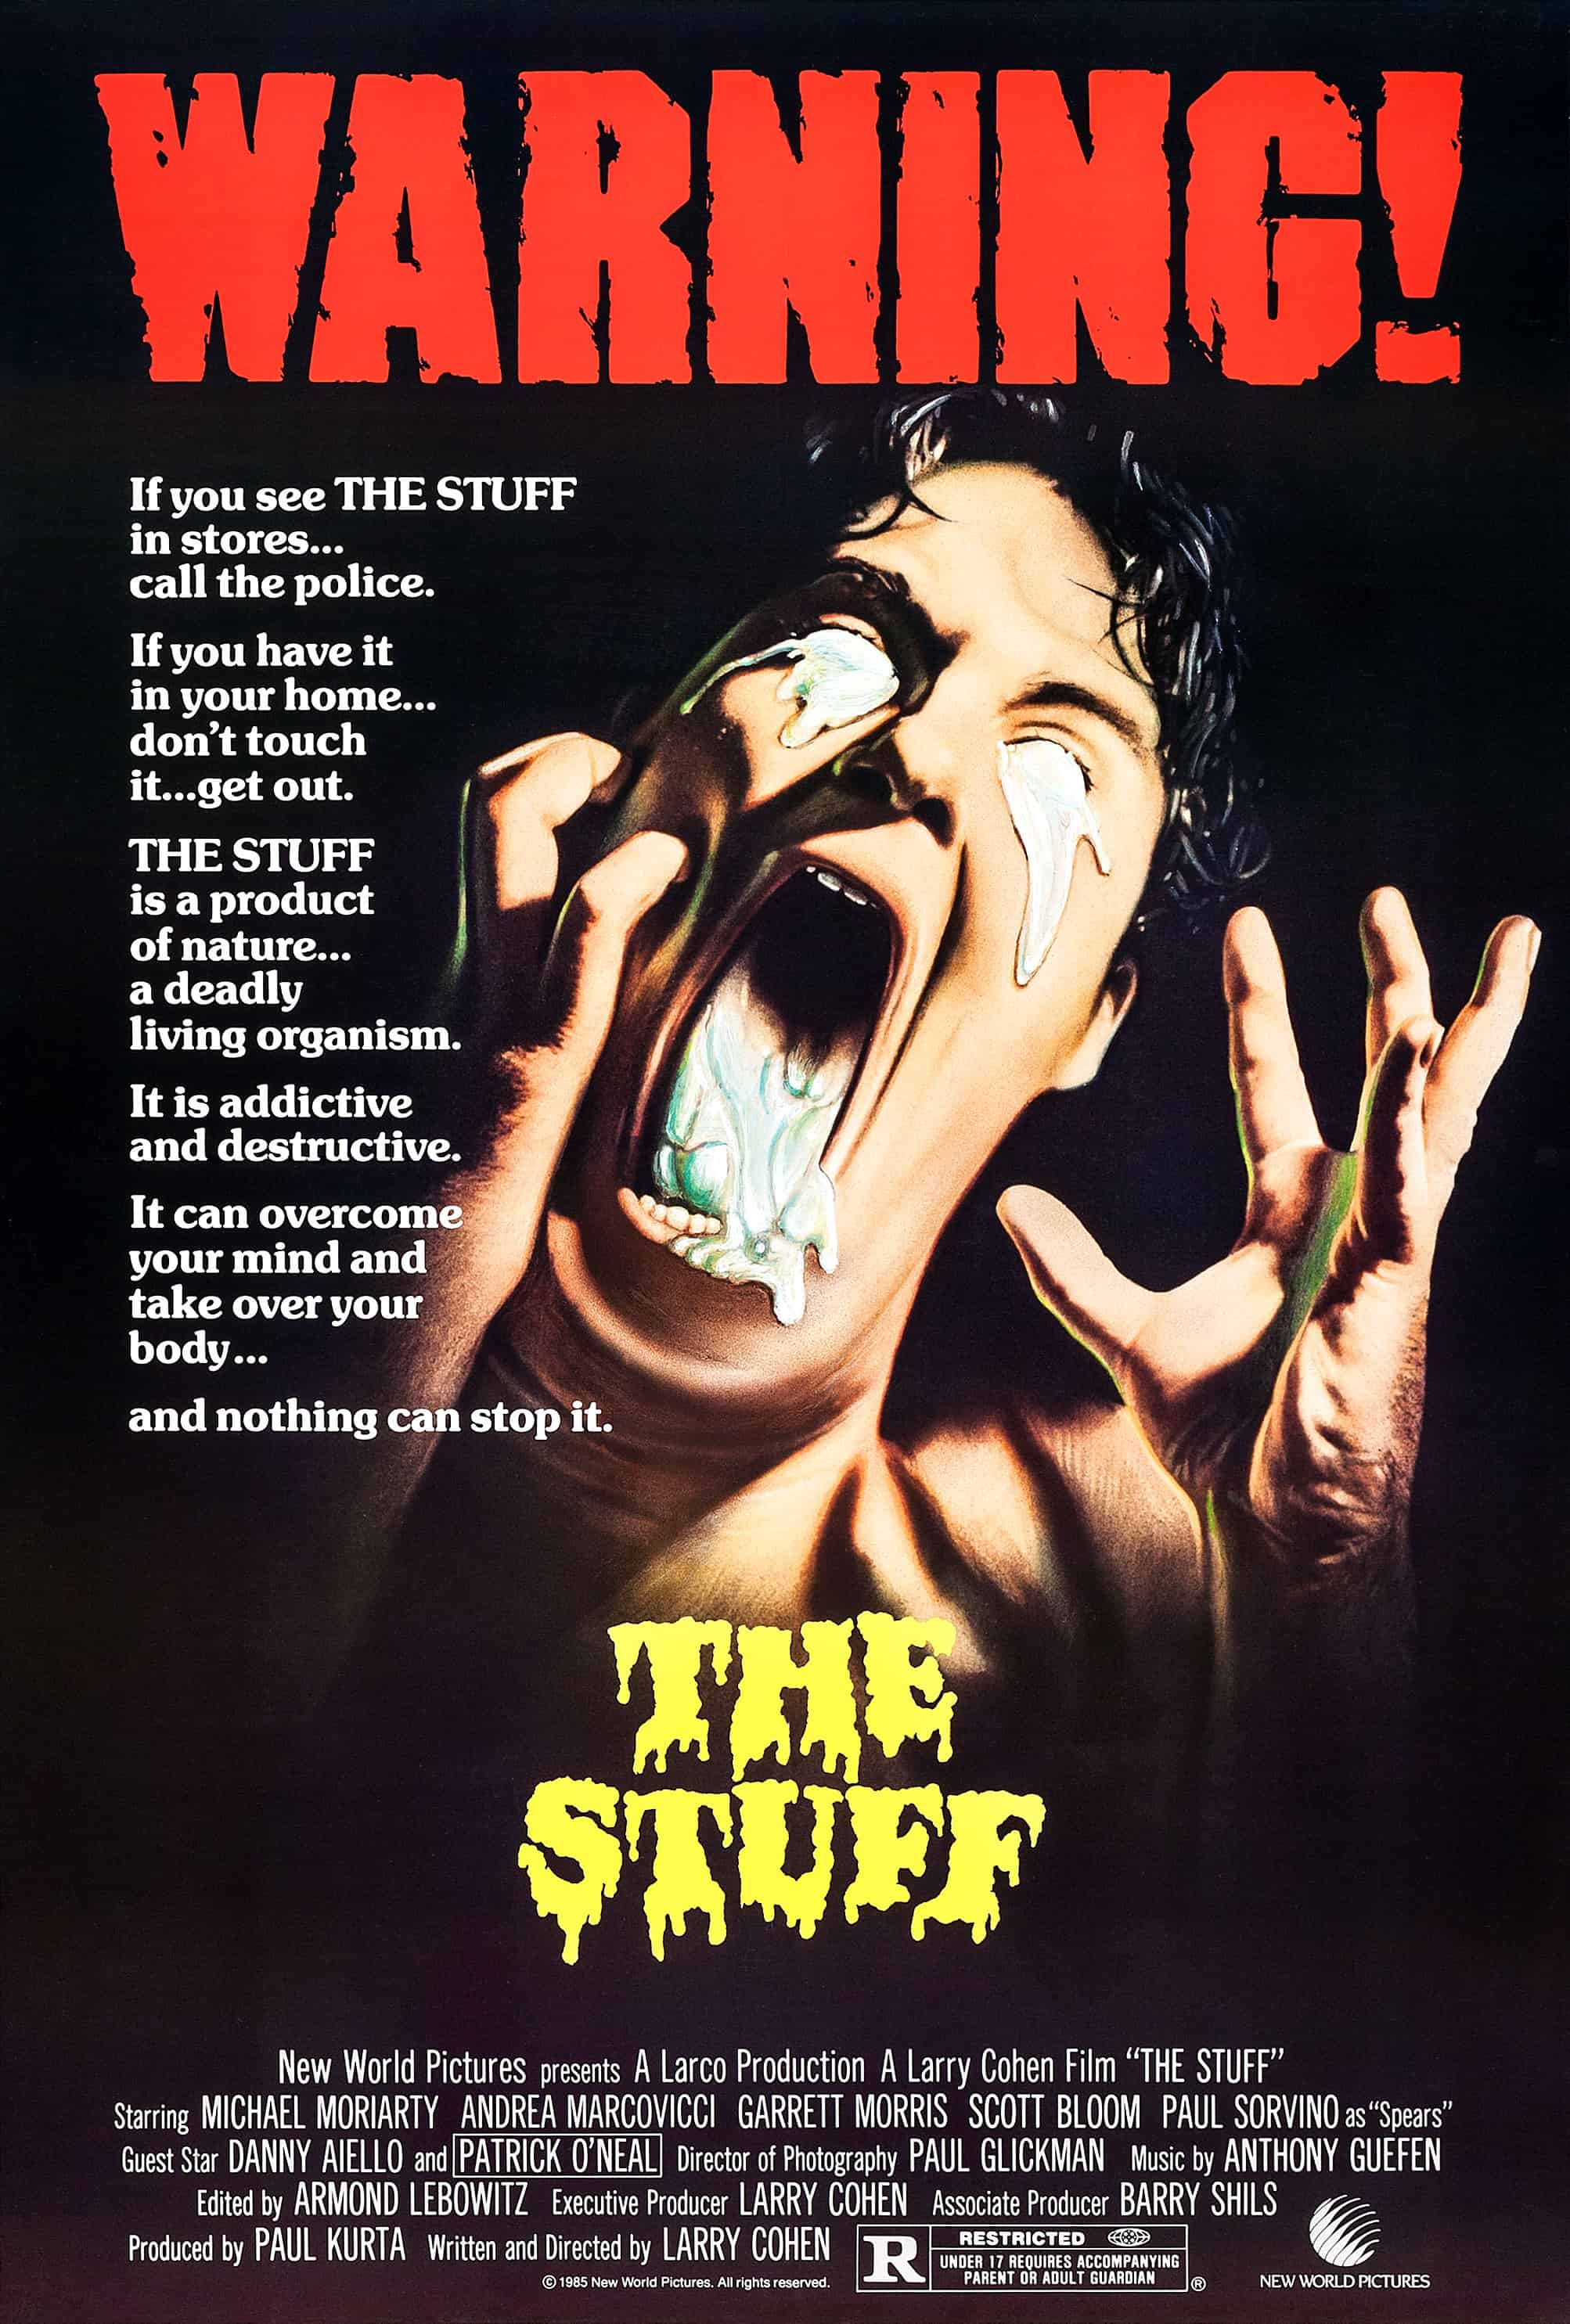 Movie Posters We Love: The Stuff (1985)